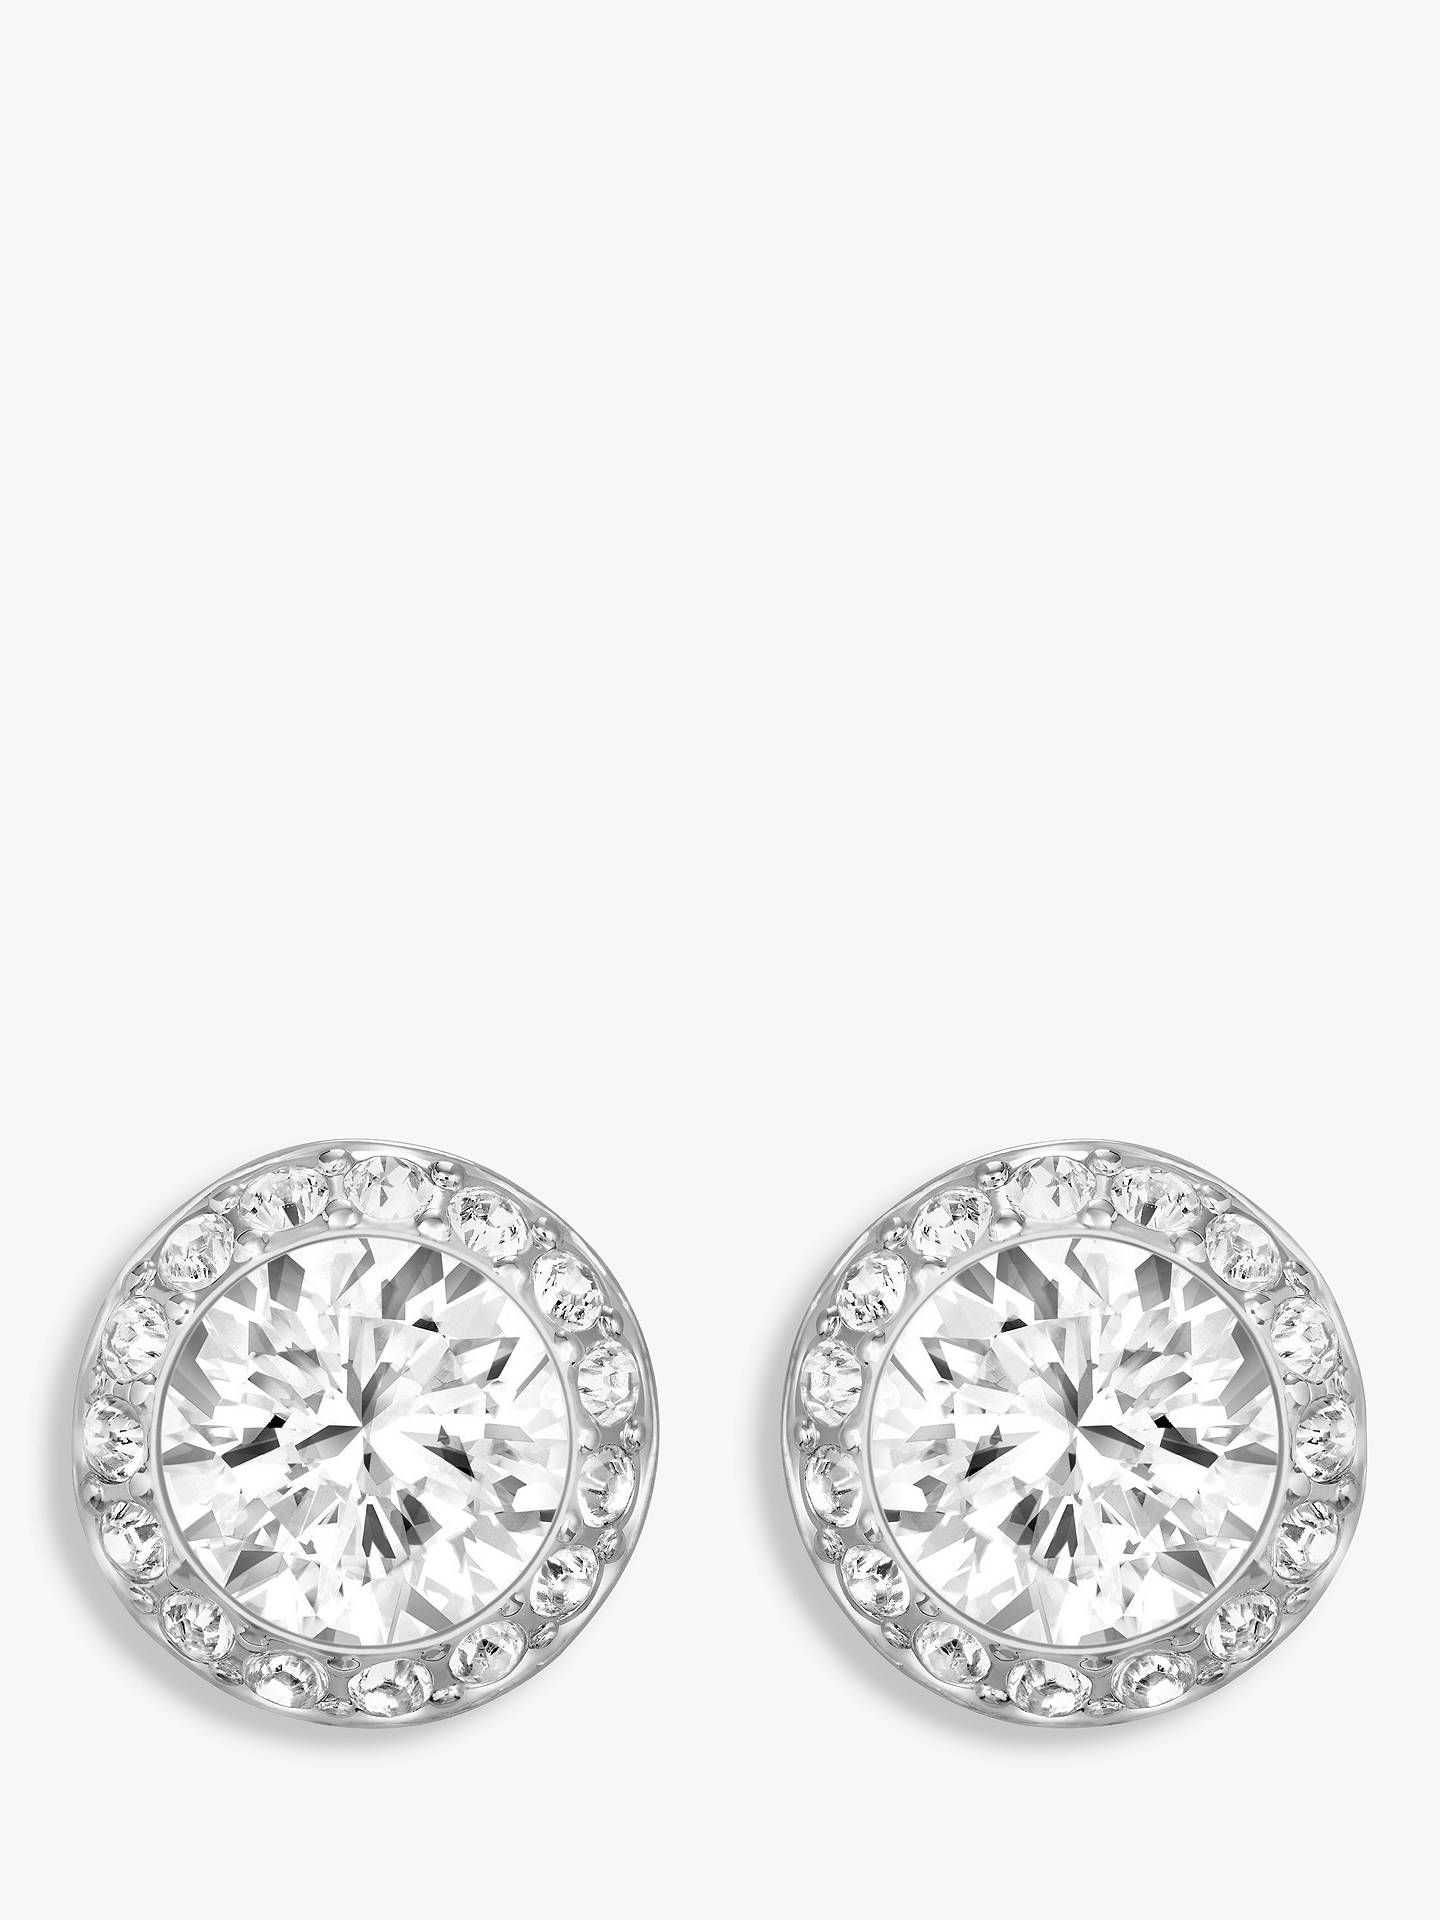 194a2a7053d75a Buy Swarovski Angelic Round Crystal Stud Earrings